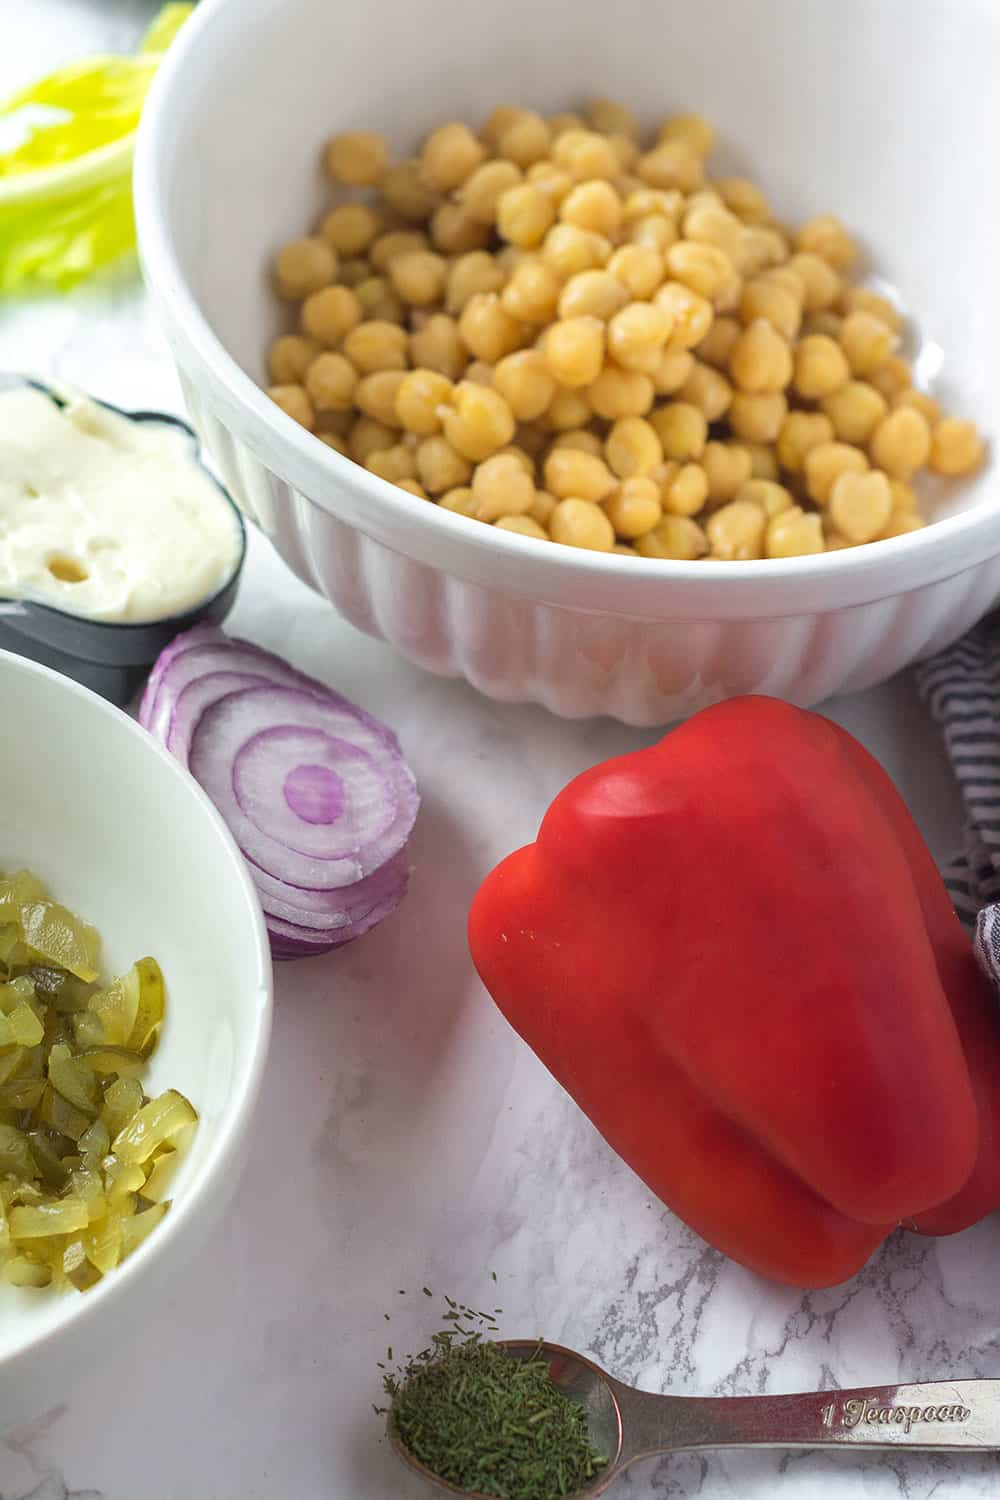 Easy Chickpea Salad Sandwich Ingredients